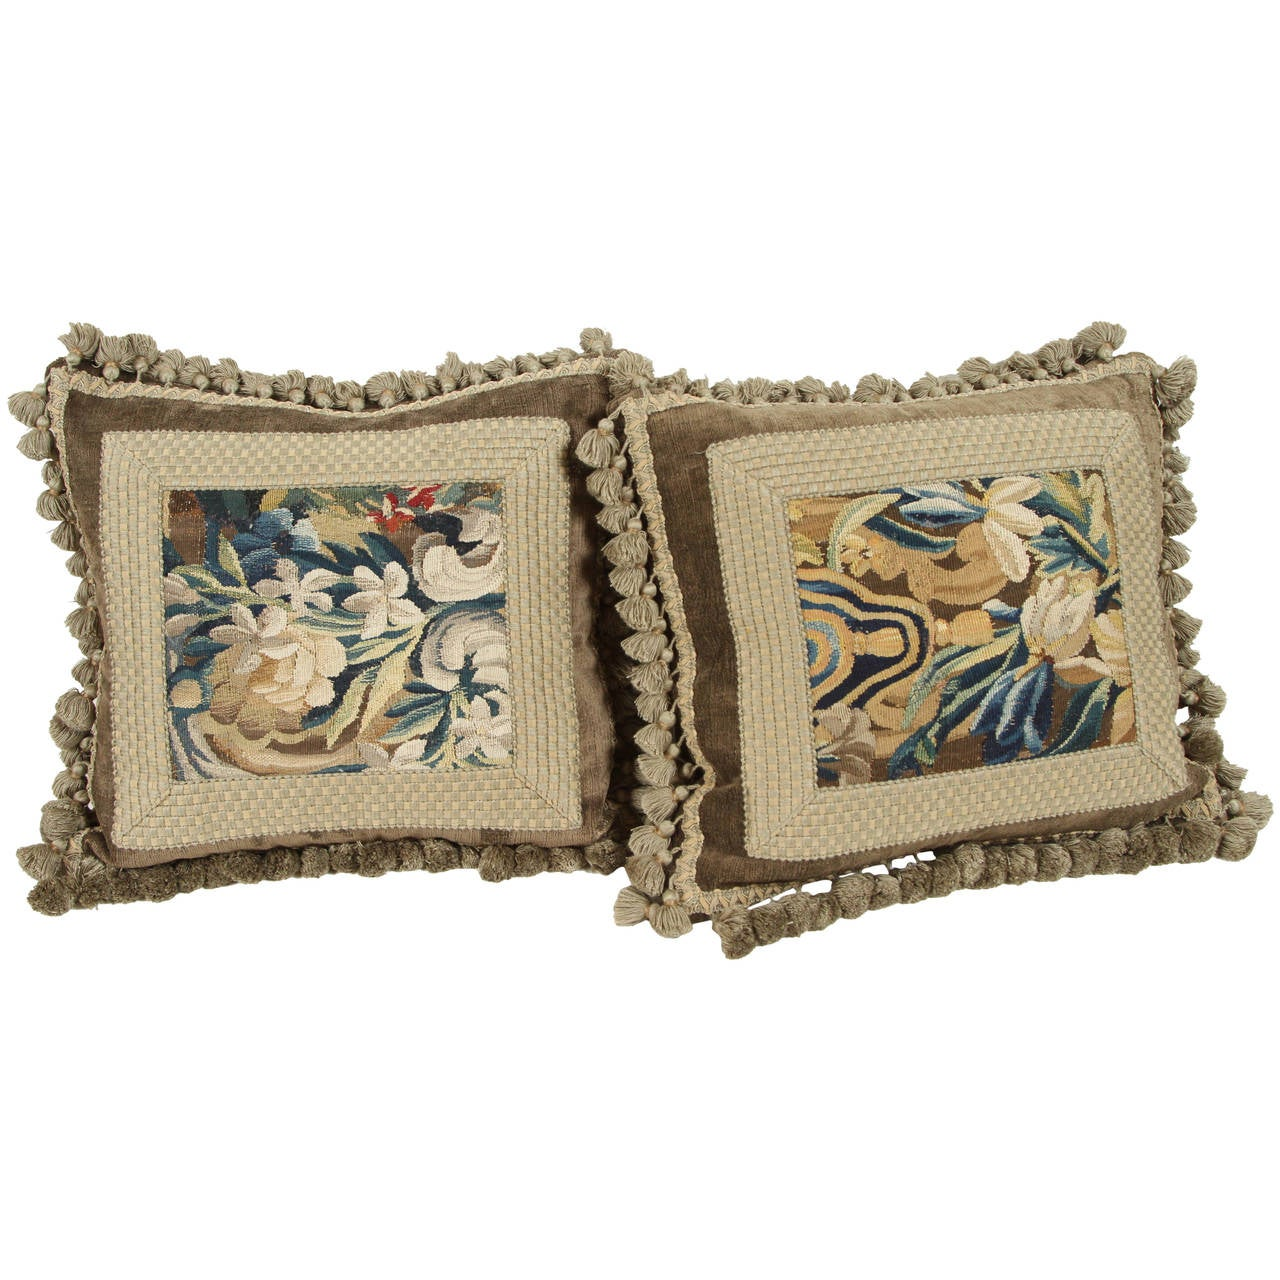 Pair of 19th Century Tapestry Pillows